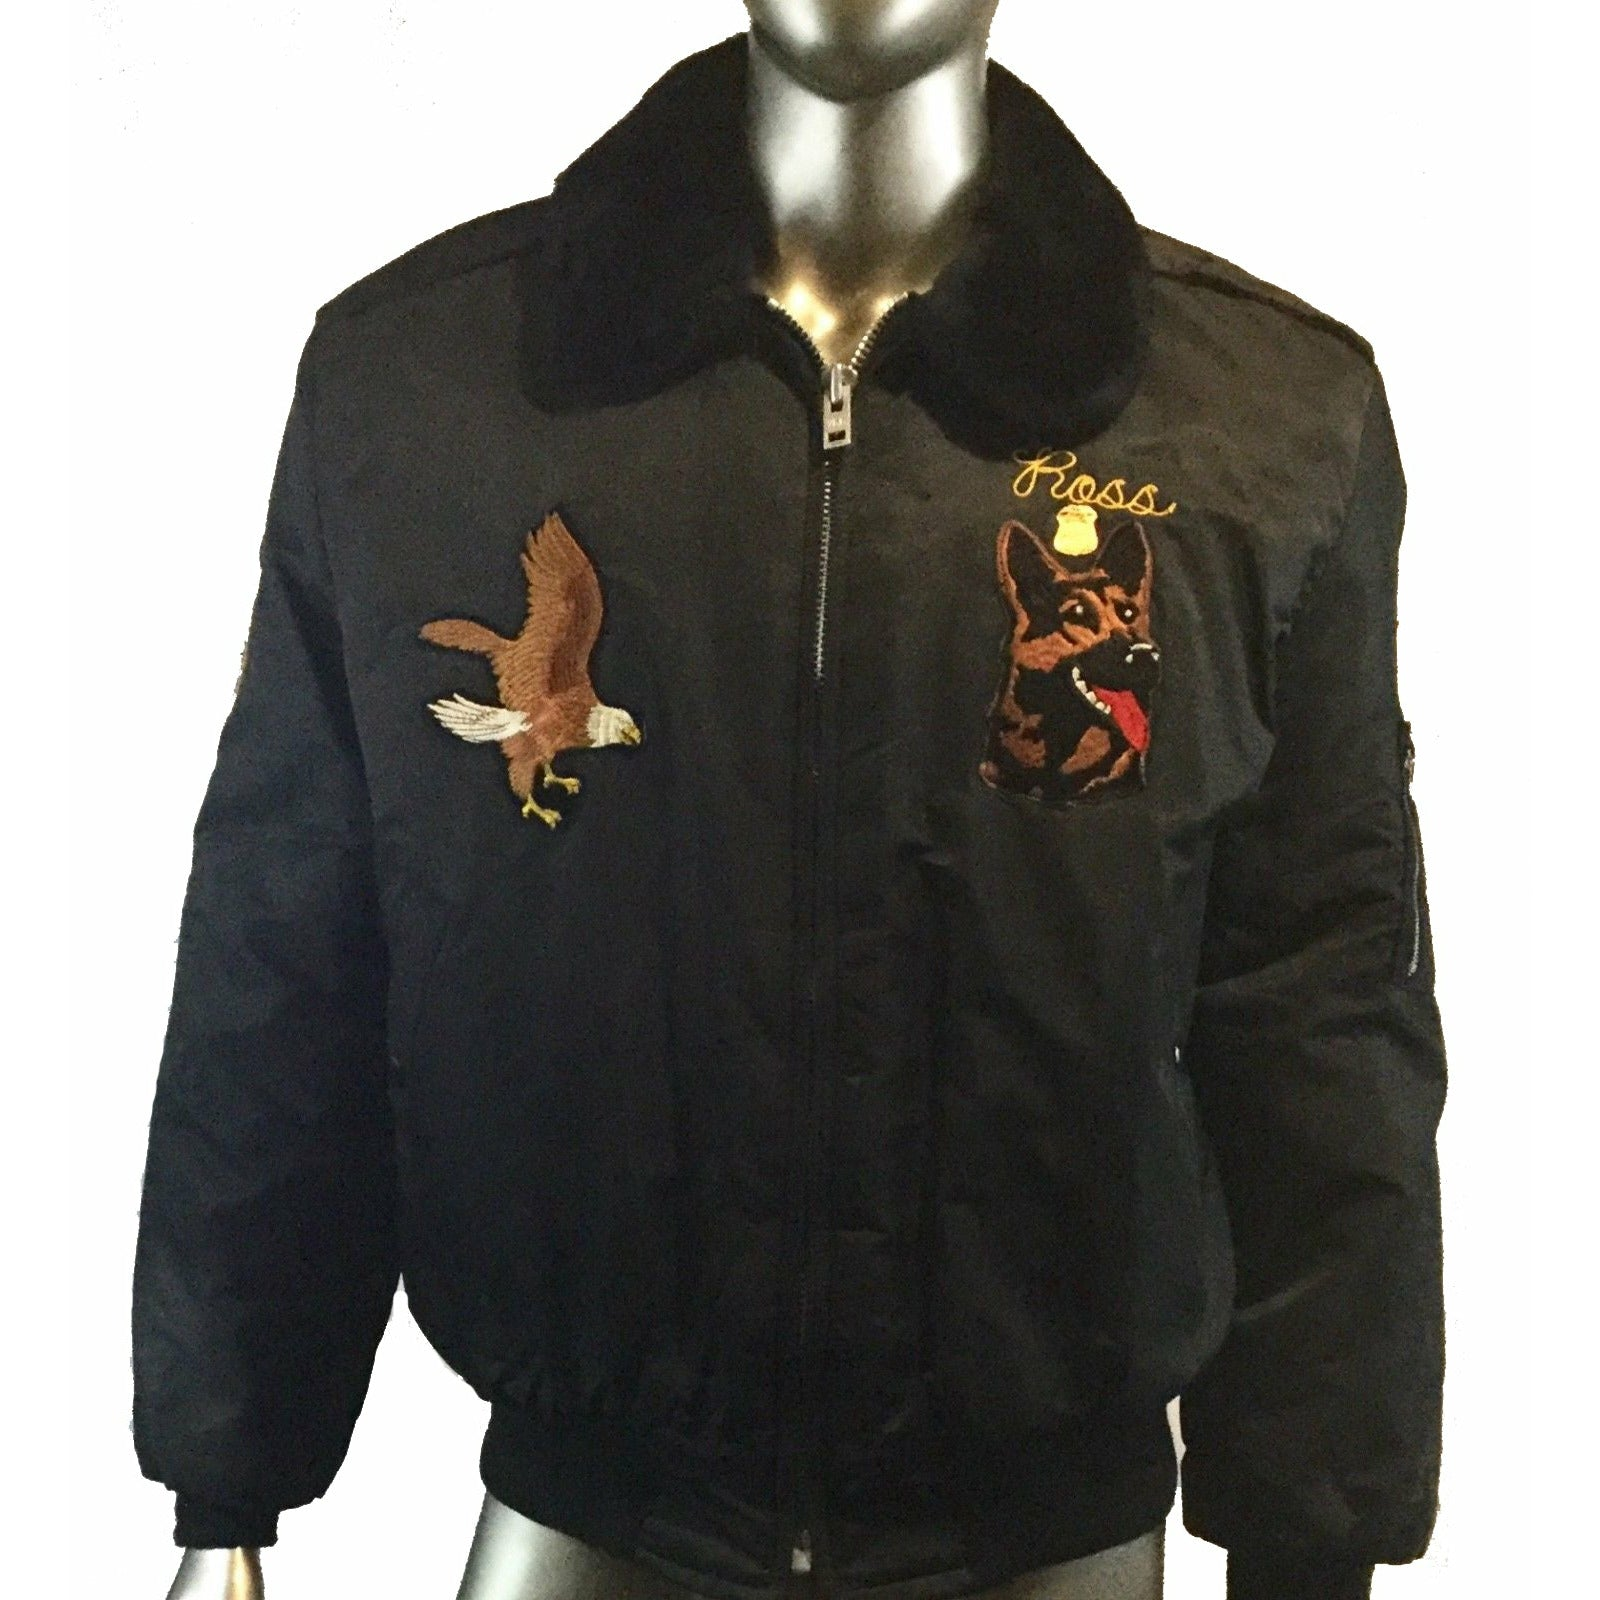 Vintage USAF Nylon Bomber Timber King Jacket. XL, Michigan, Eagle Patche, Dog